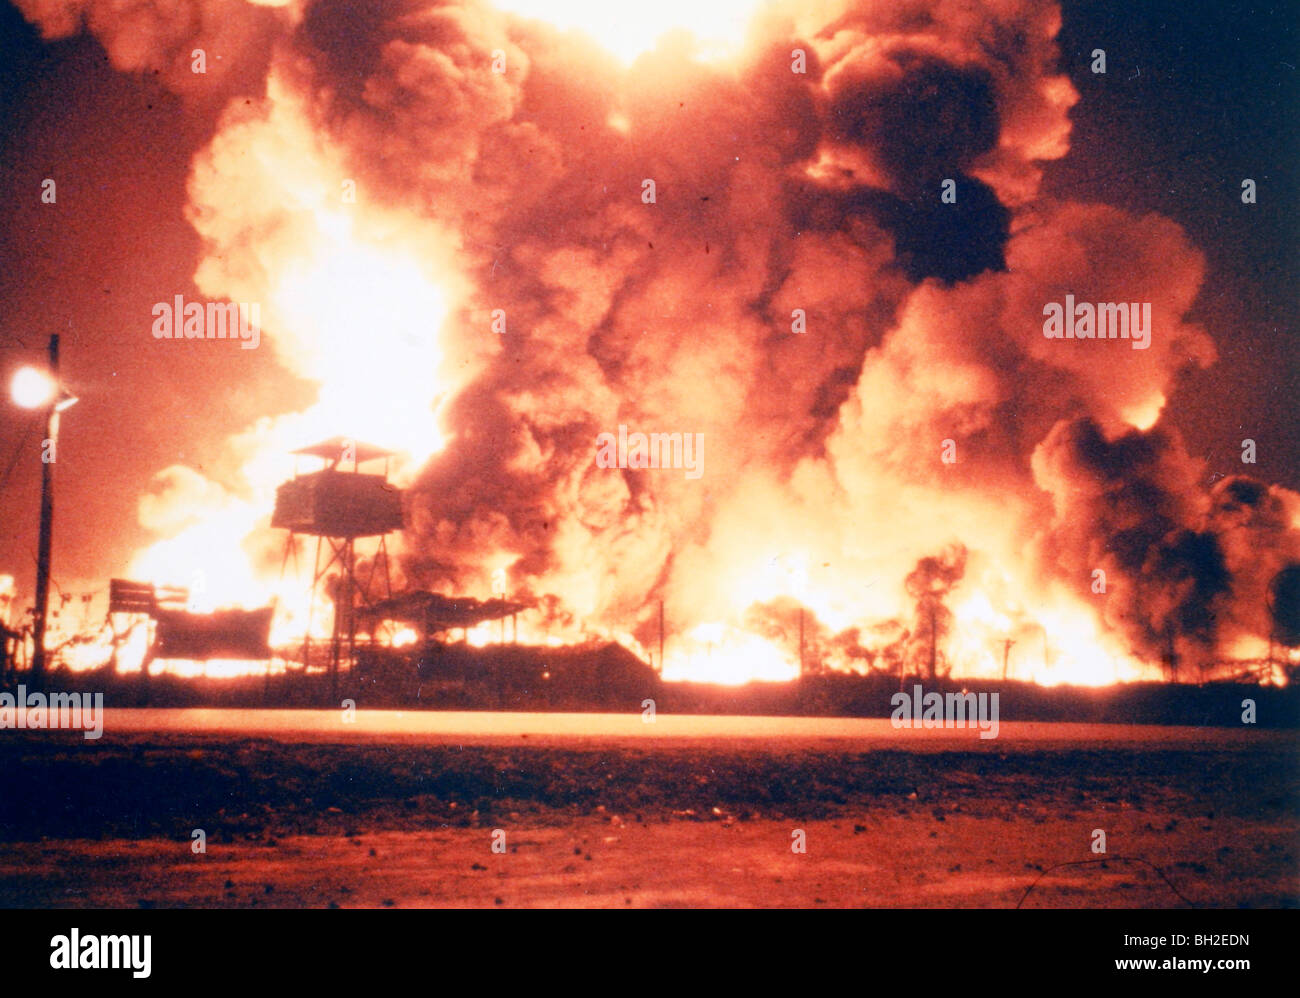 Qui Nhon, Vietnam: Fuel stores at the 321st ARVN POL depot burn after being ignited by Viet Cong 82mm mortar fire - Stock Image